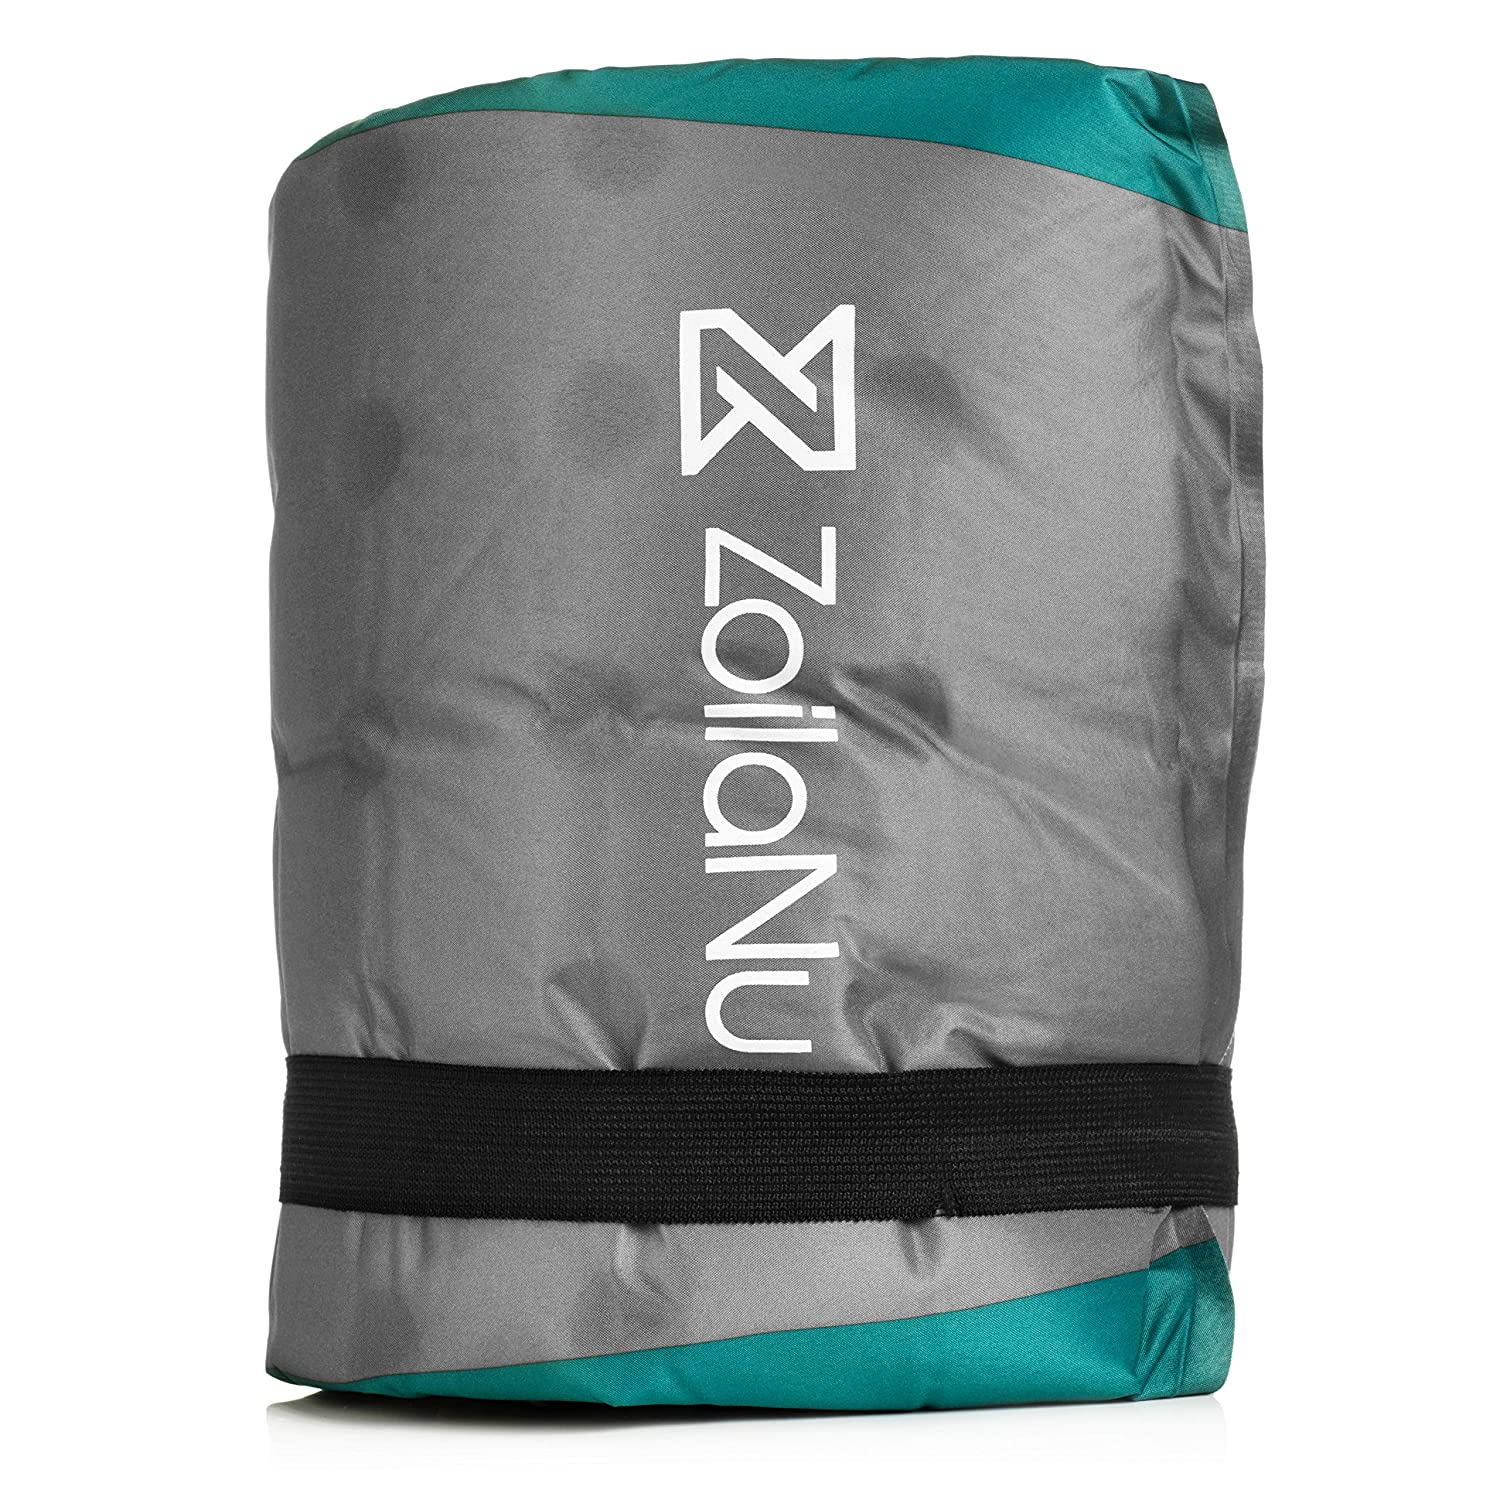 Specialized Material Provides Comfortable Sleep and Prevents Deflating ZoilaNu Self Inflating Sleeping Pad Wide Ultra Lightweight and Durable Works with Camping Mountaineering and Hiking